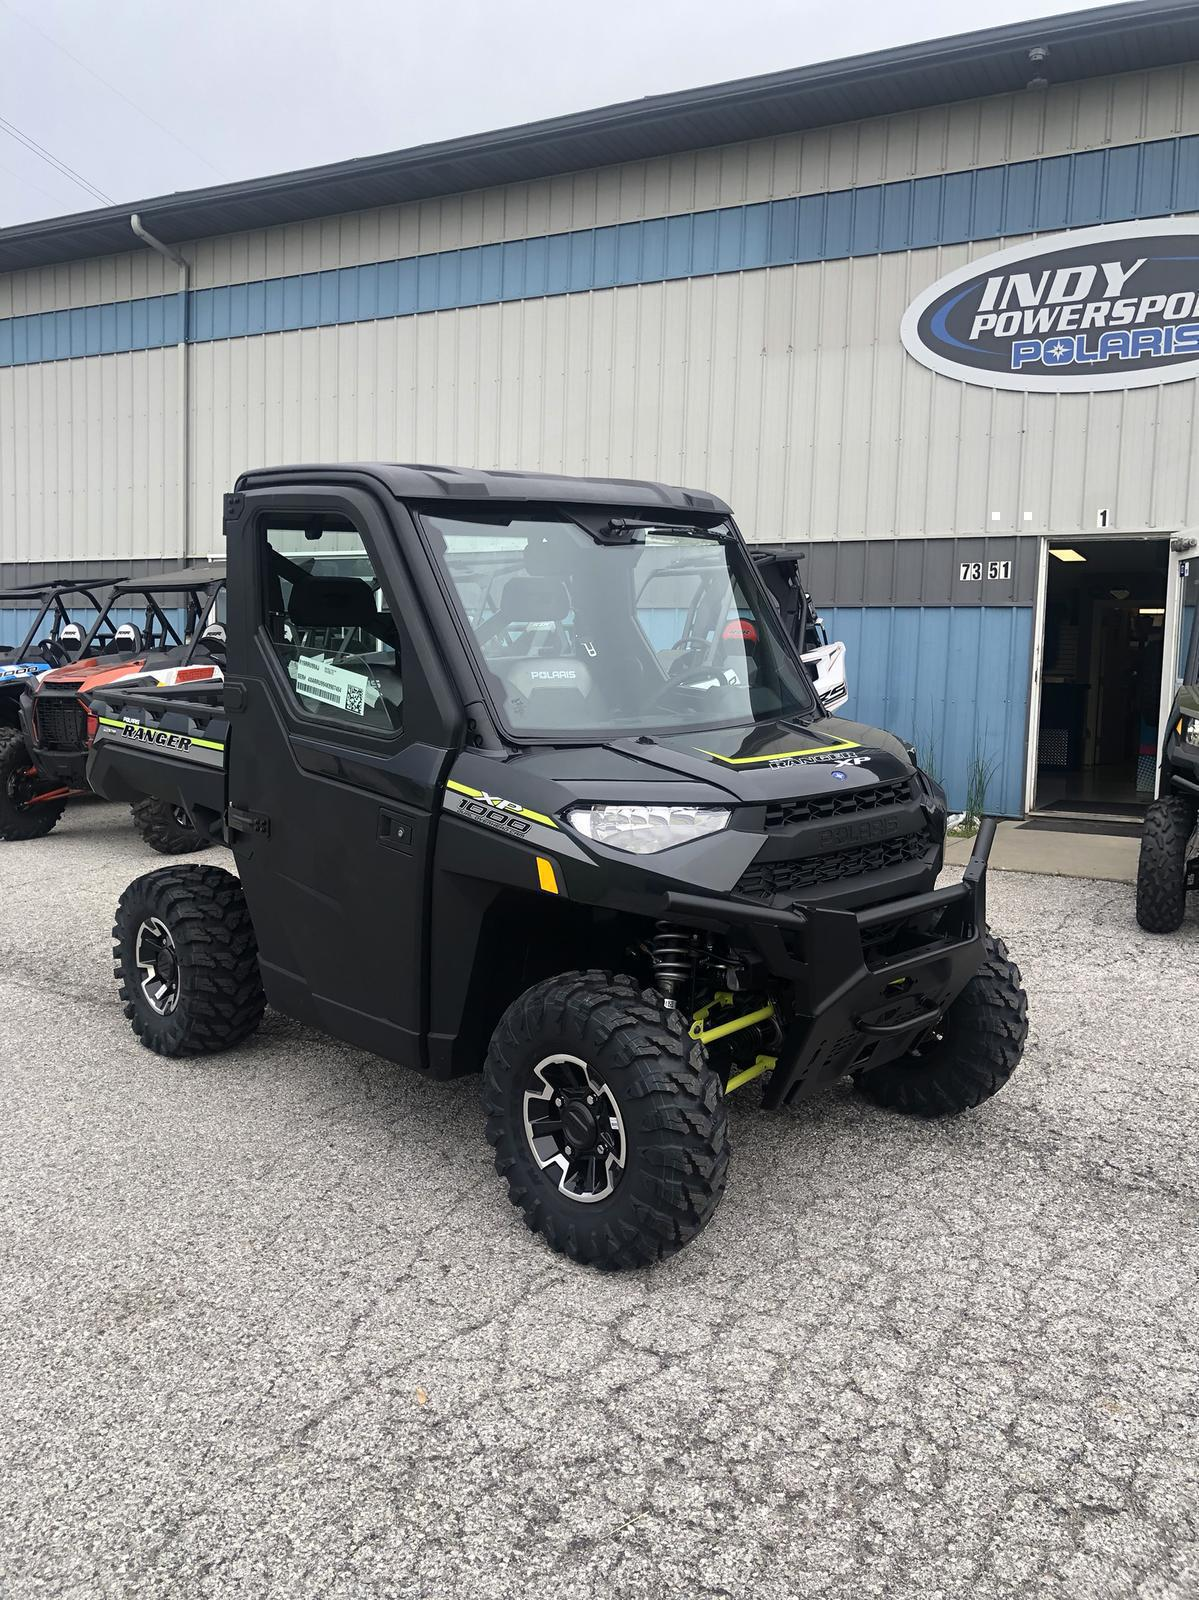 Inventory Indy Powersports Whitestown, IN (317) 769-5728